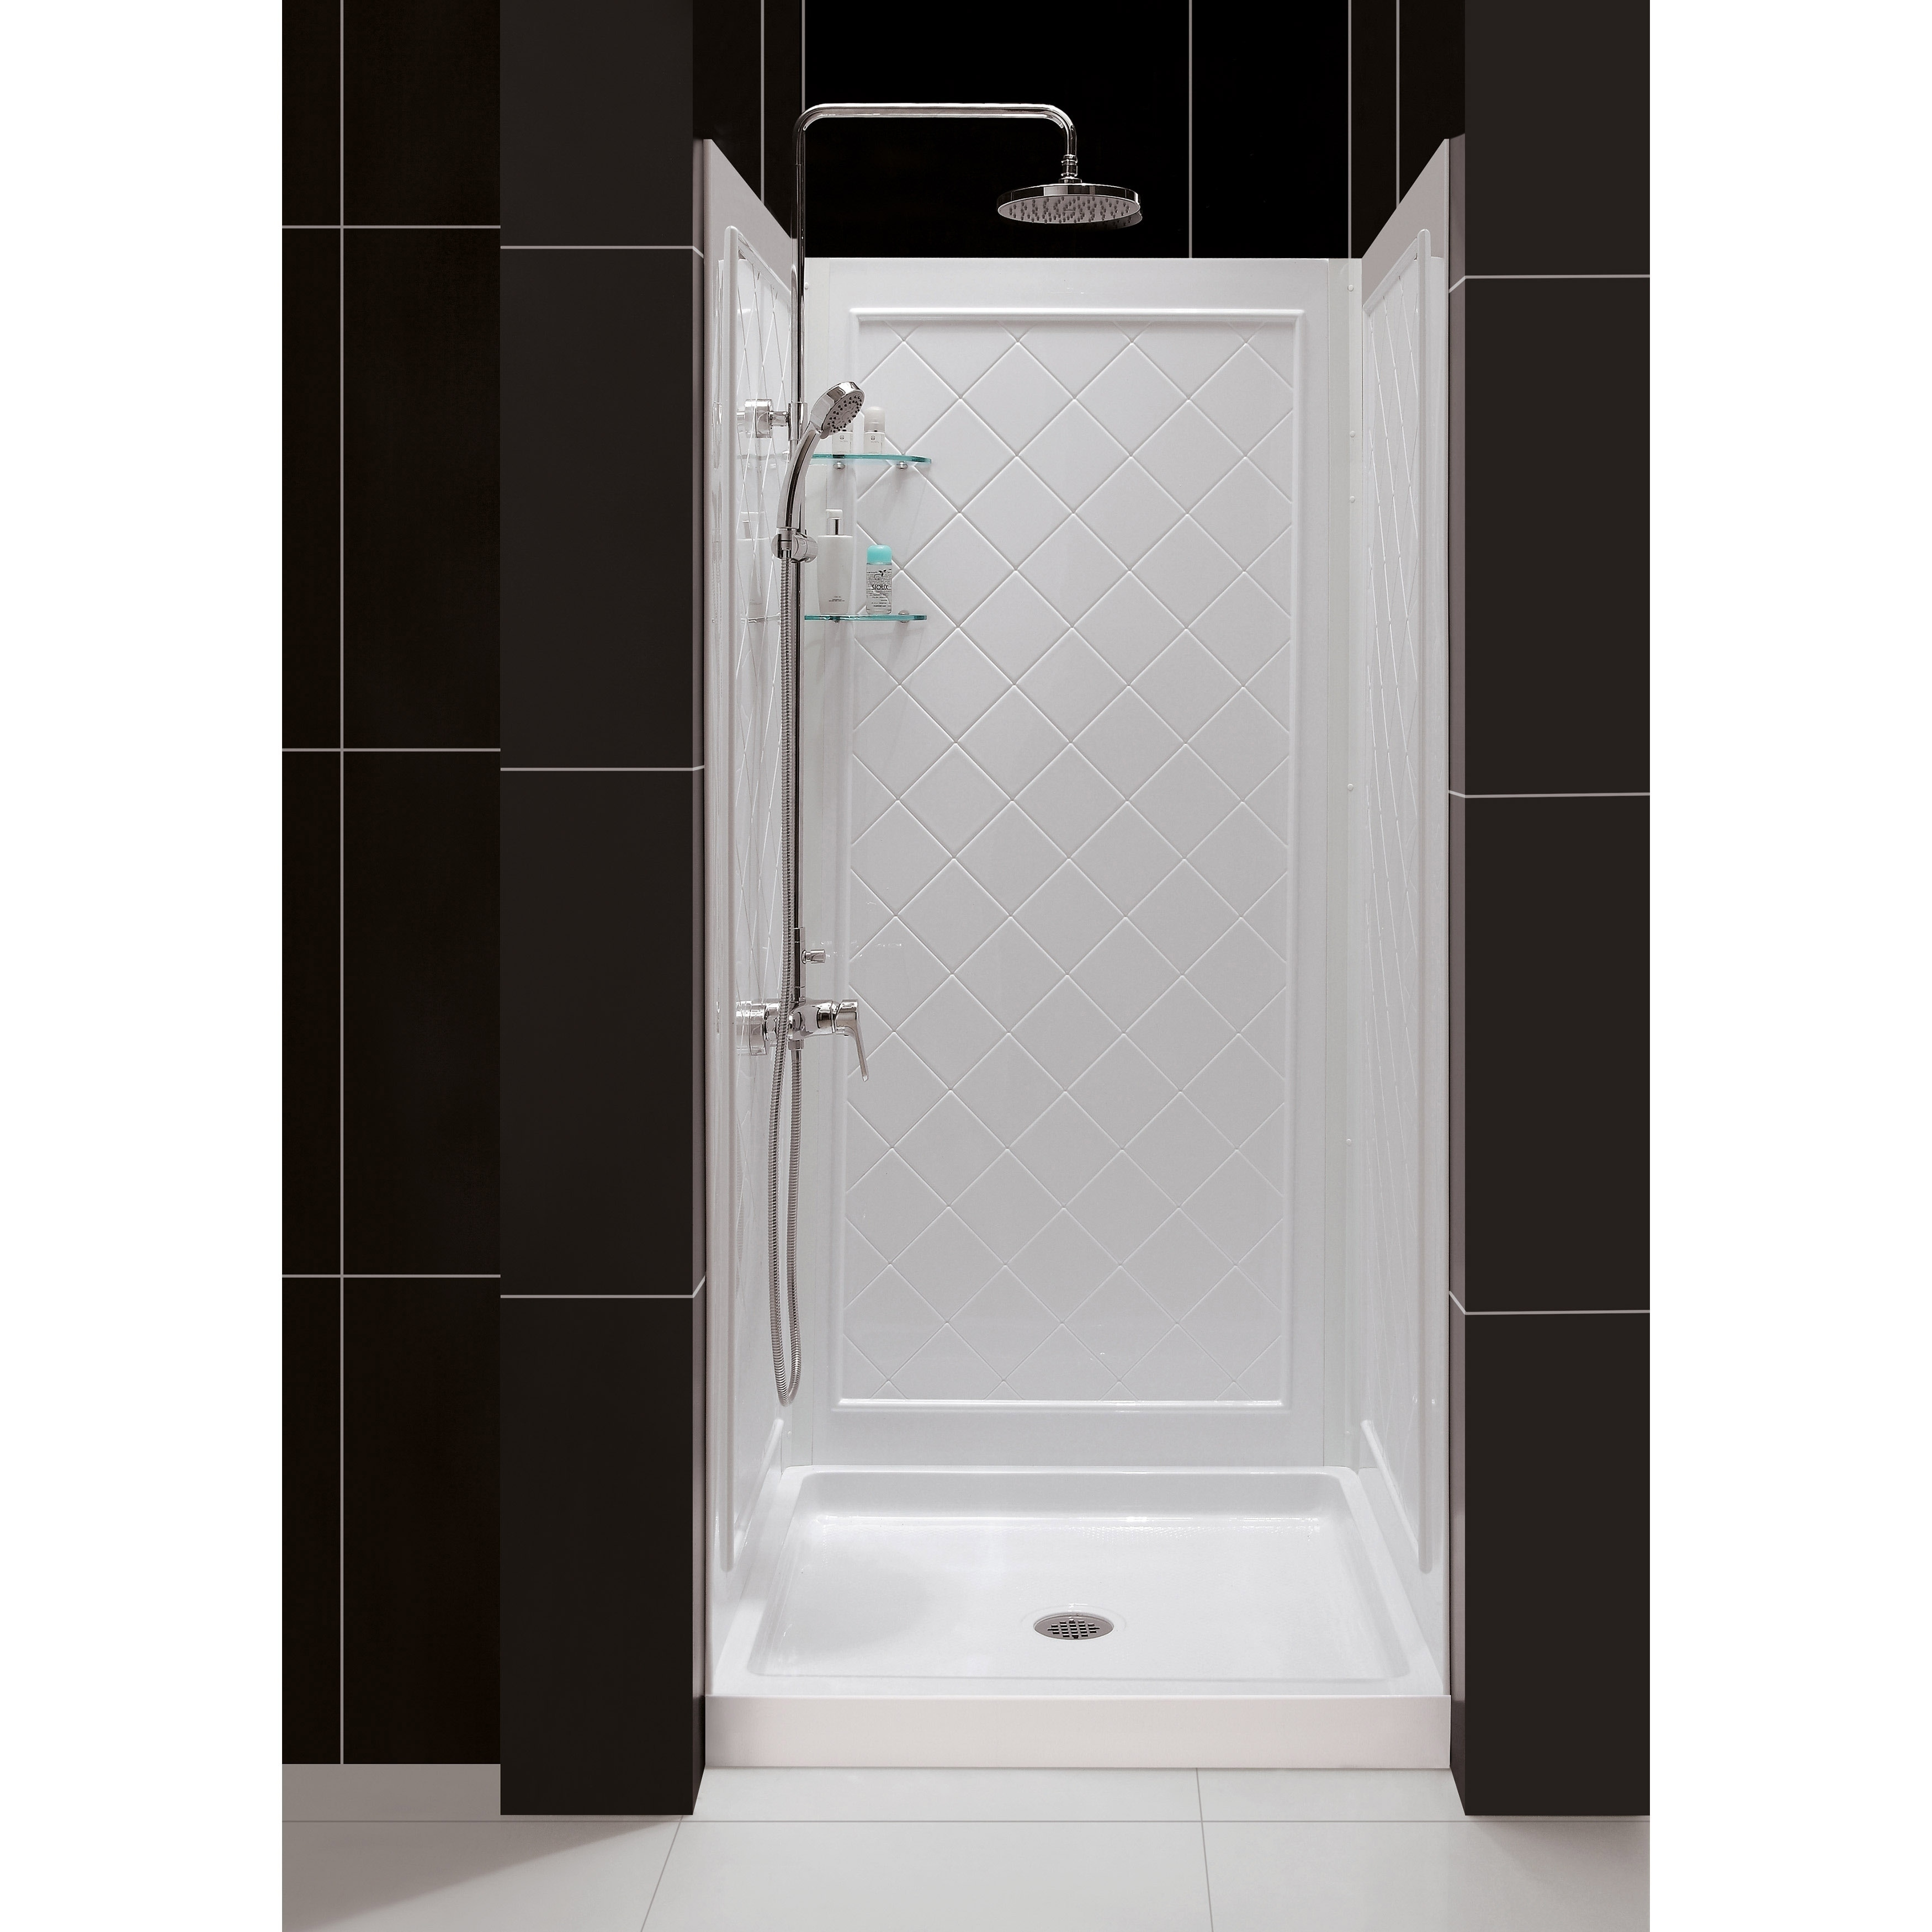 Buy 32 x 32, Acrylic Shower Stalls & Kits Online at Overstock.com ...